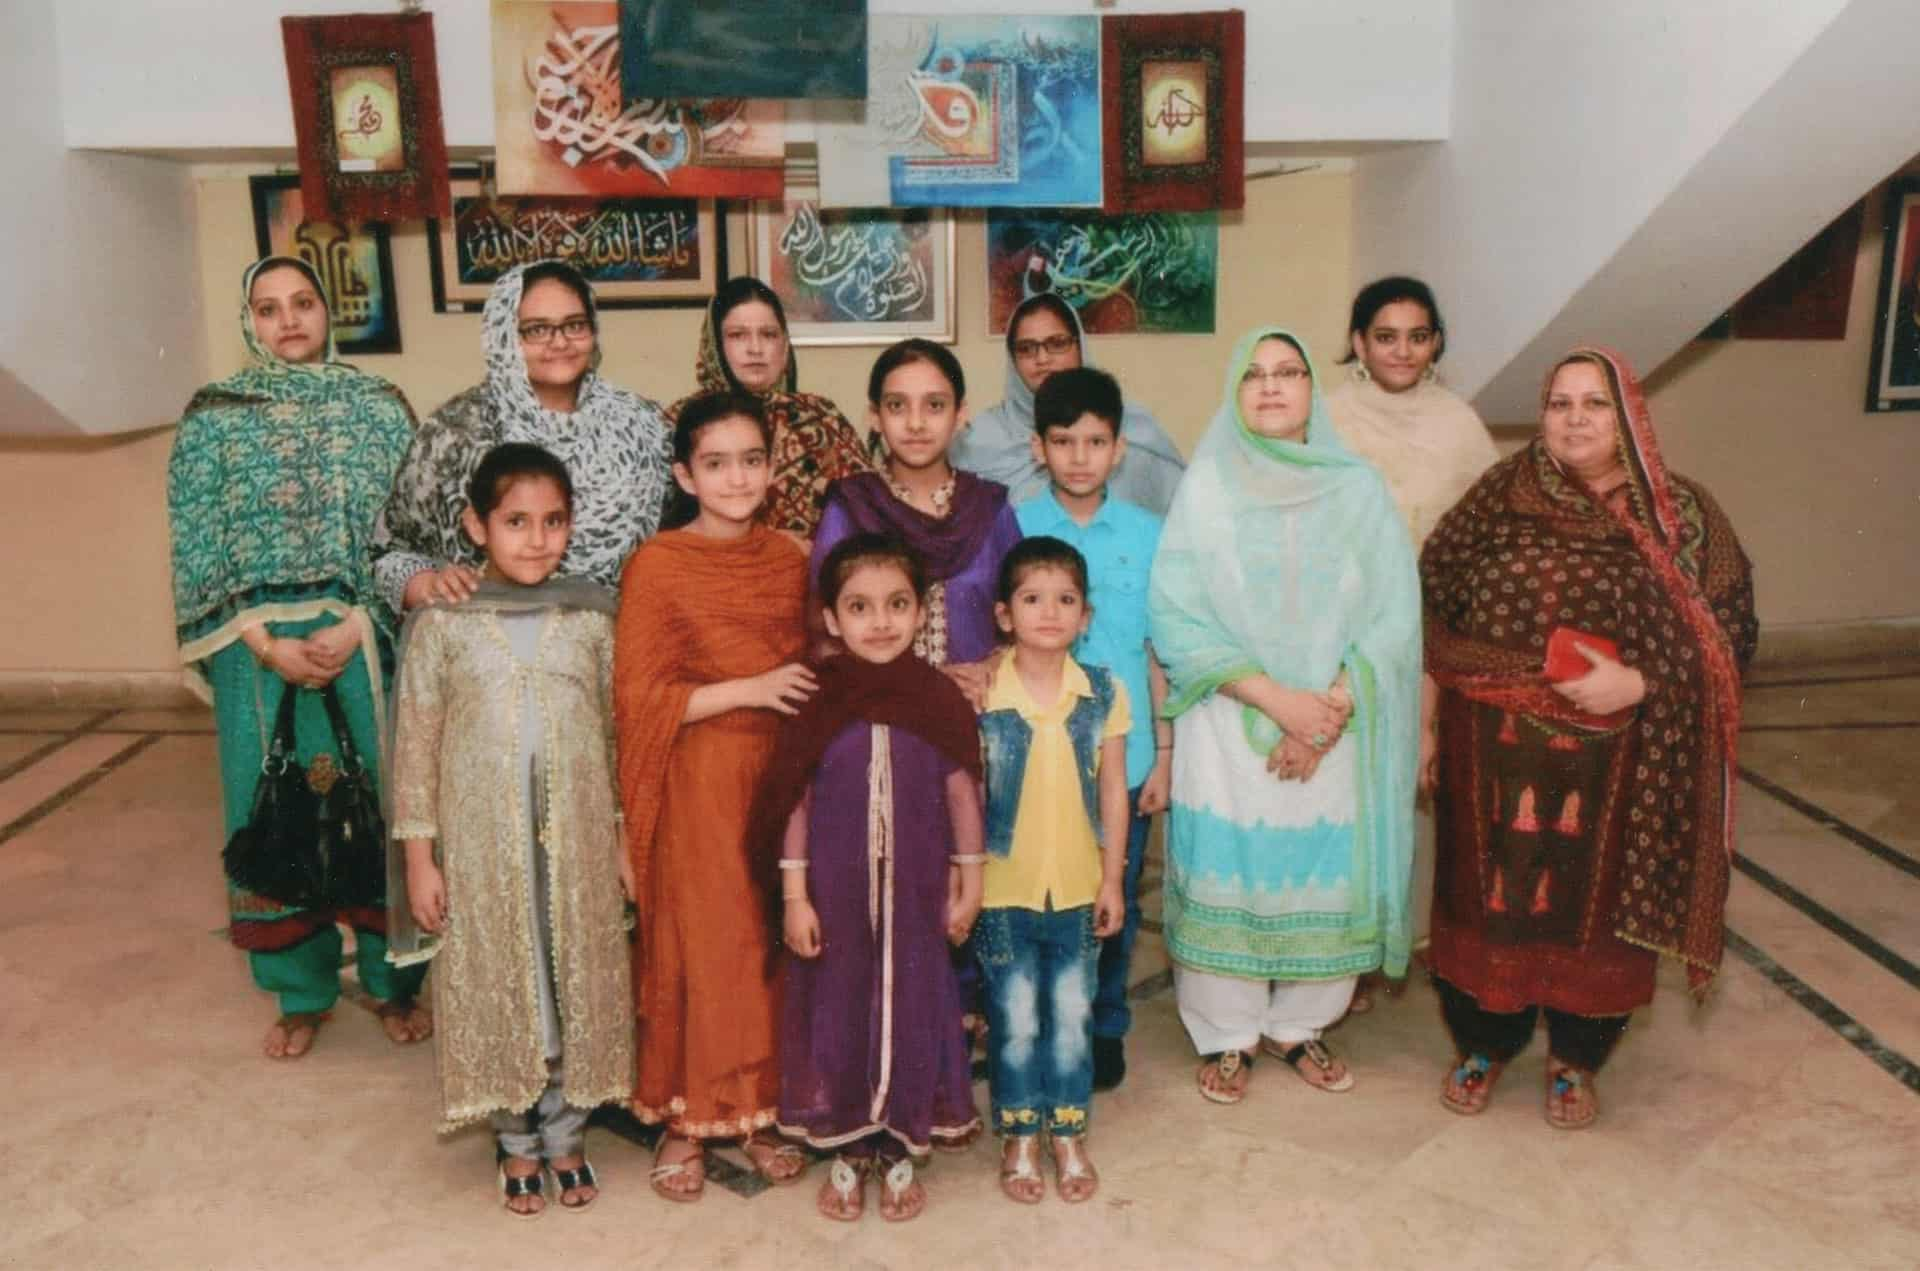 Nasra's sister and family at an exhbition in Karachi, Pakistan.